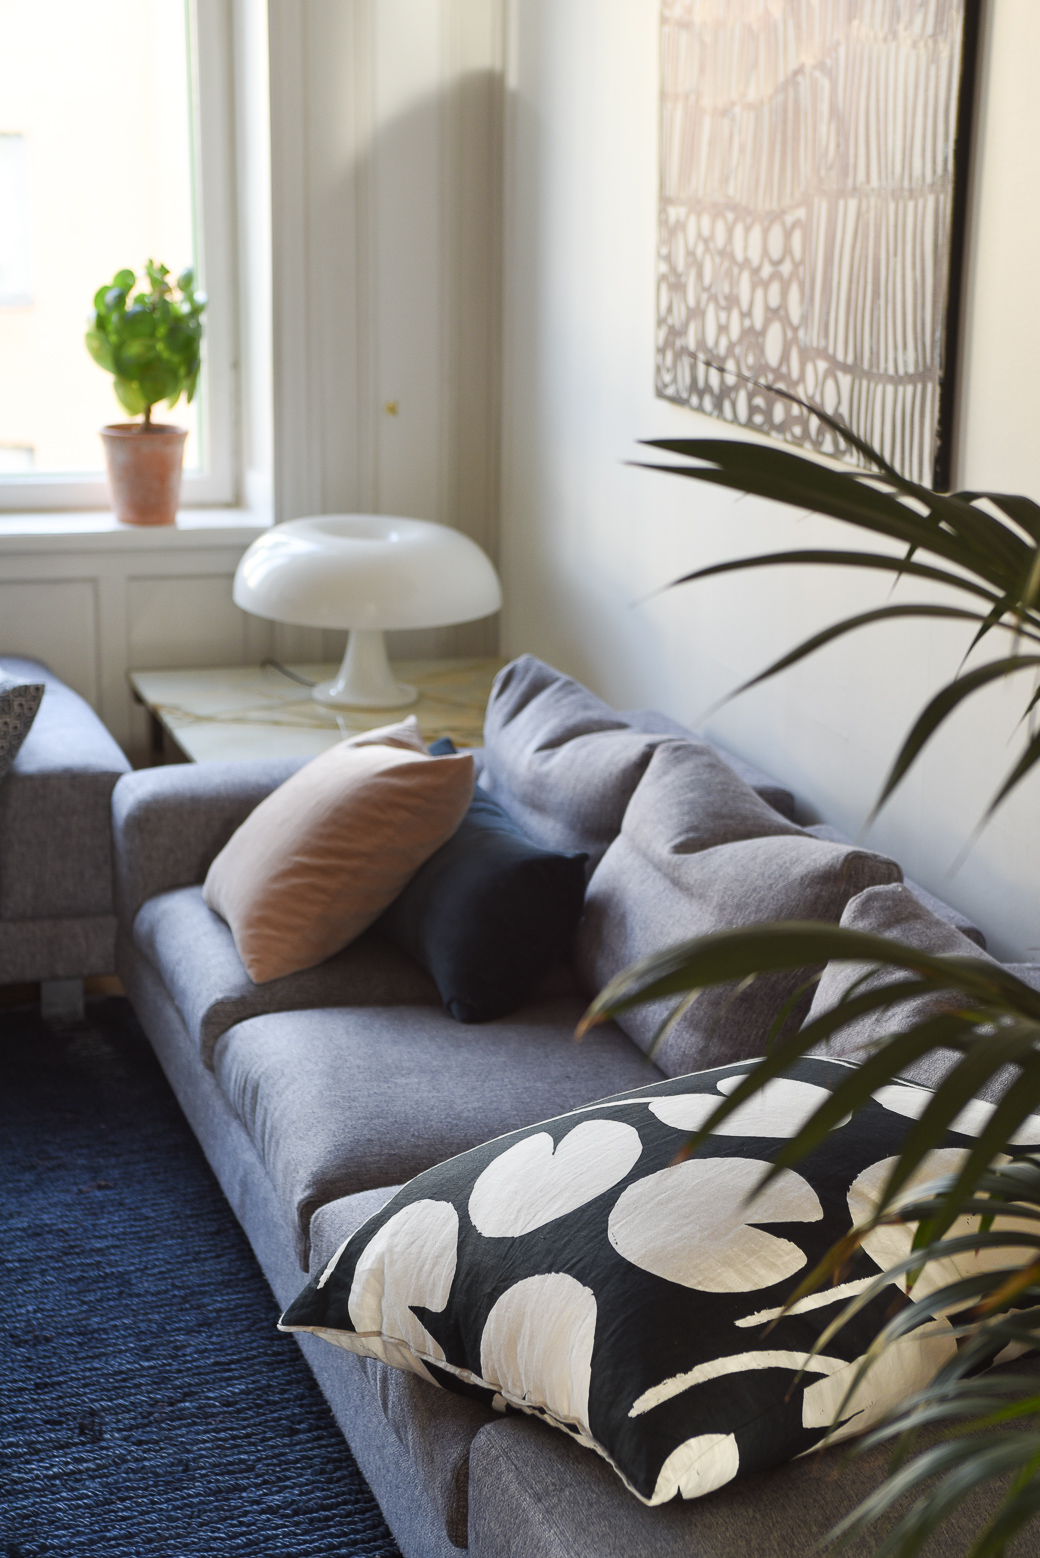 Every day Swedish Design in the home-lily pad.jpg